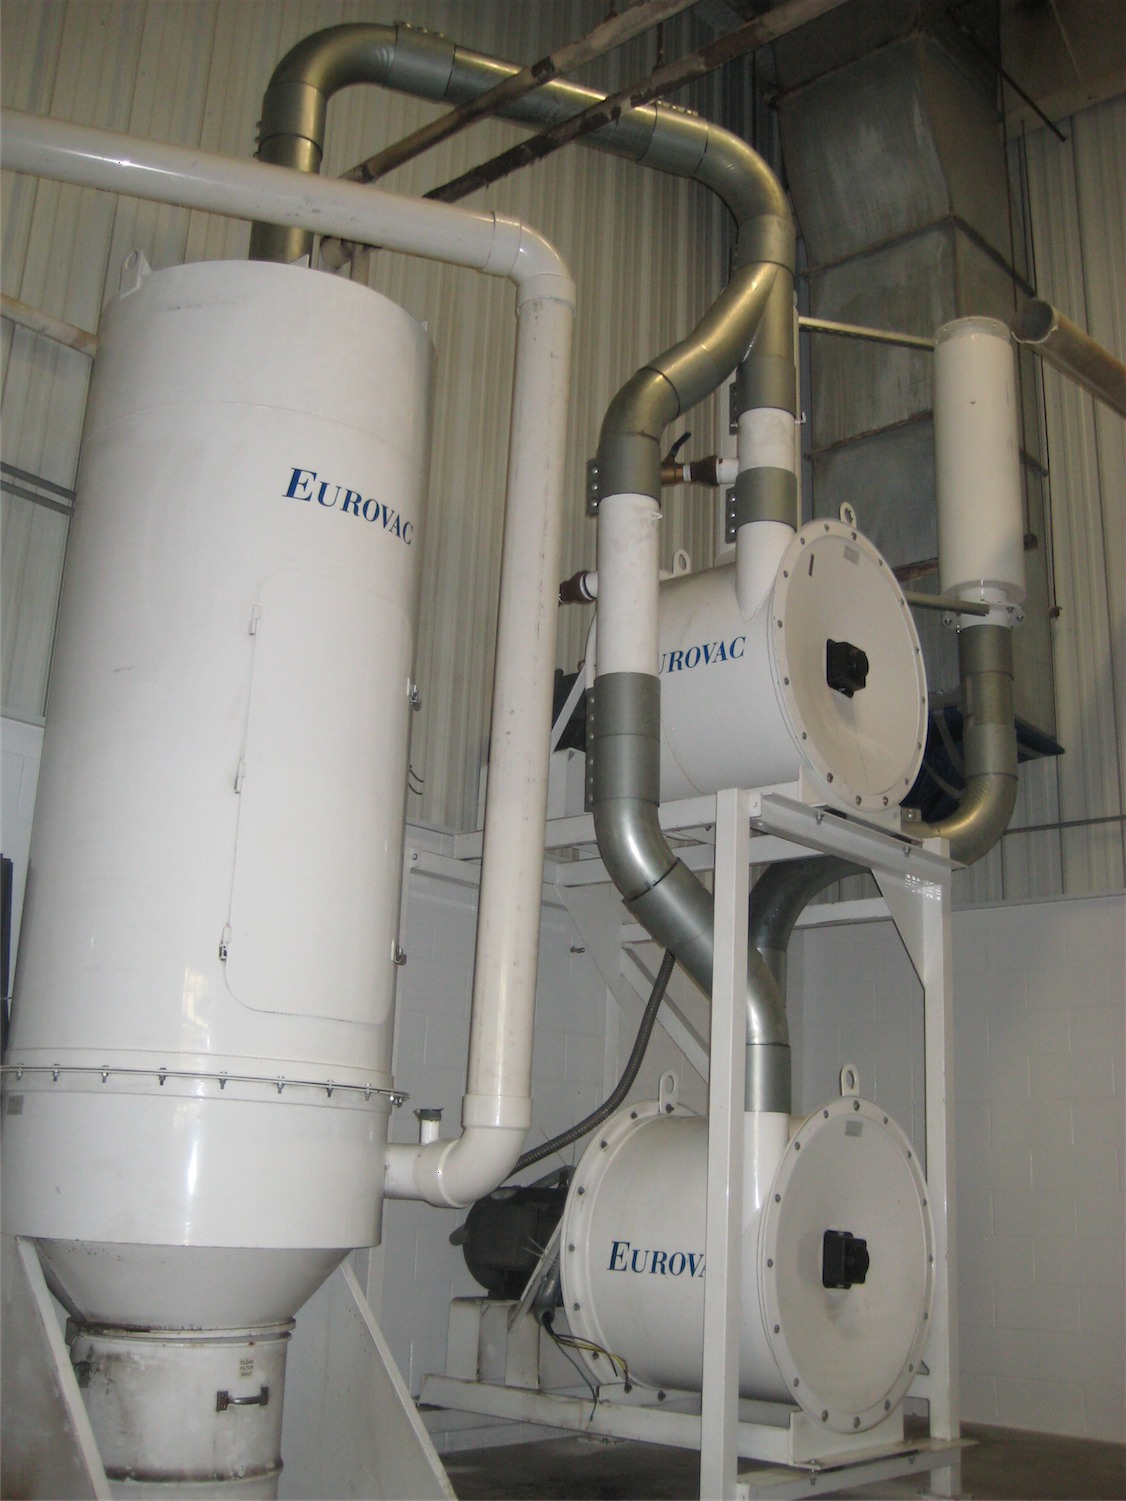 Eurovac Iii 10hp To 100hp Multi Stage Pump Central